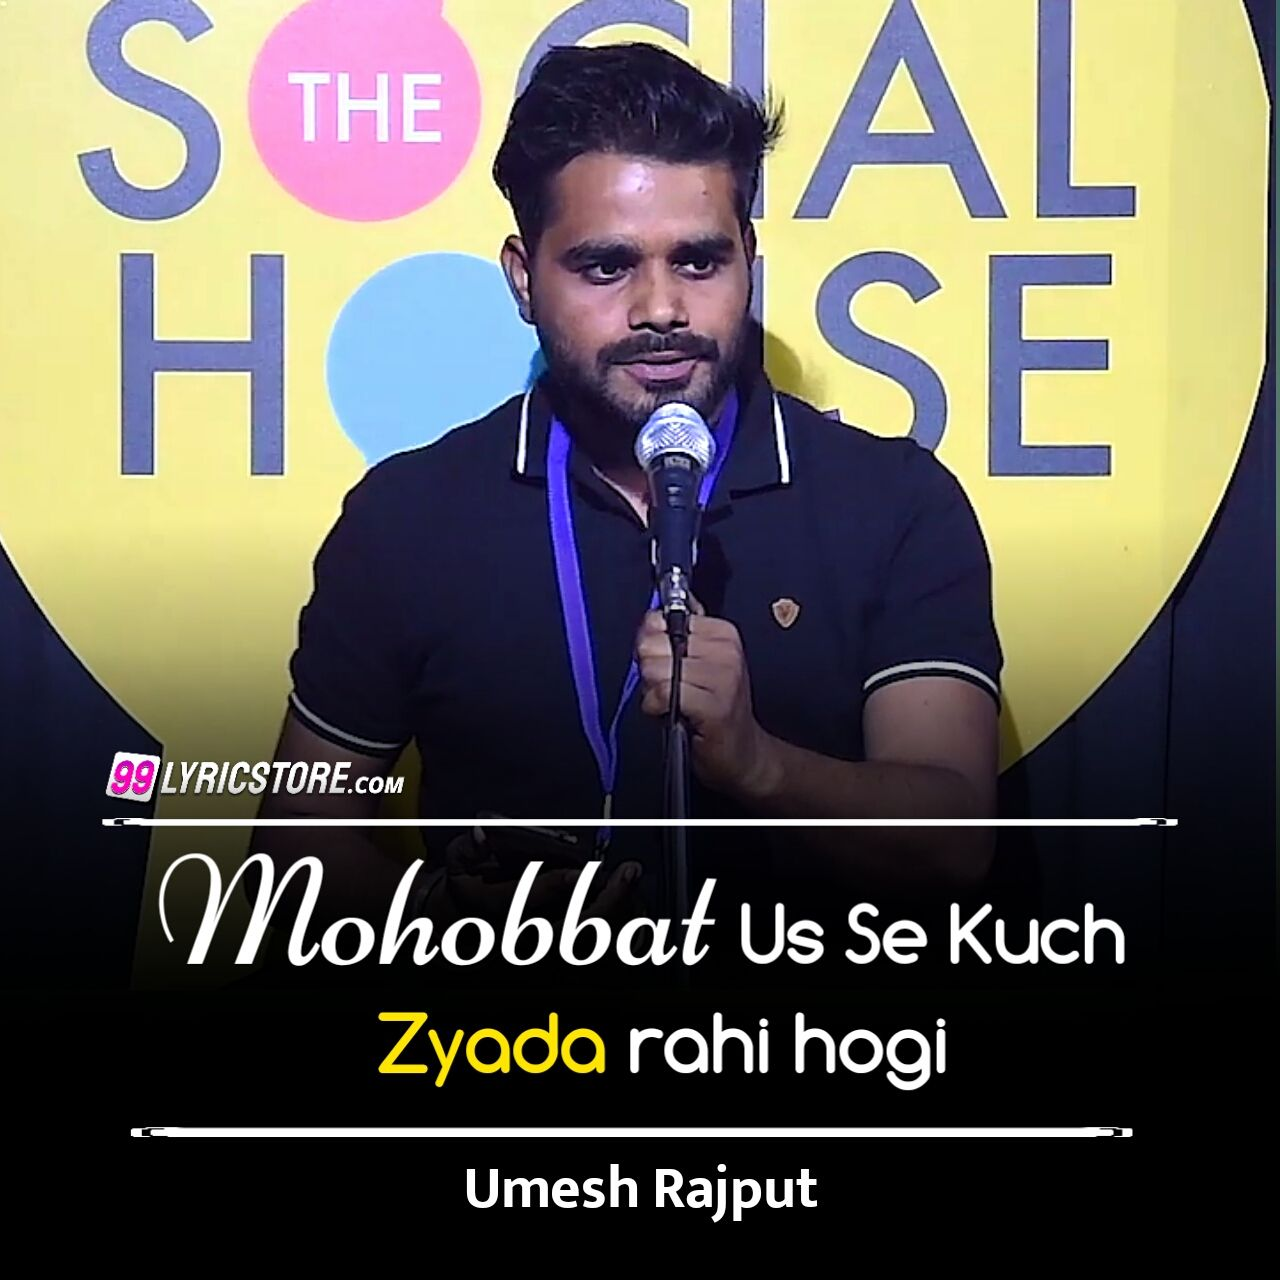 'Mohabbat Us Se Kuch Zyada rahi hogi' Poetry has written and performed by Umesh Rajput on The Social House's Plateform.